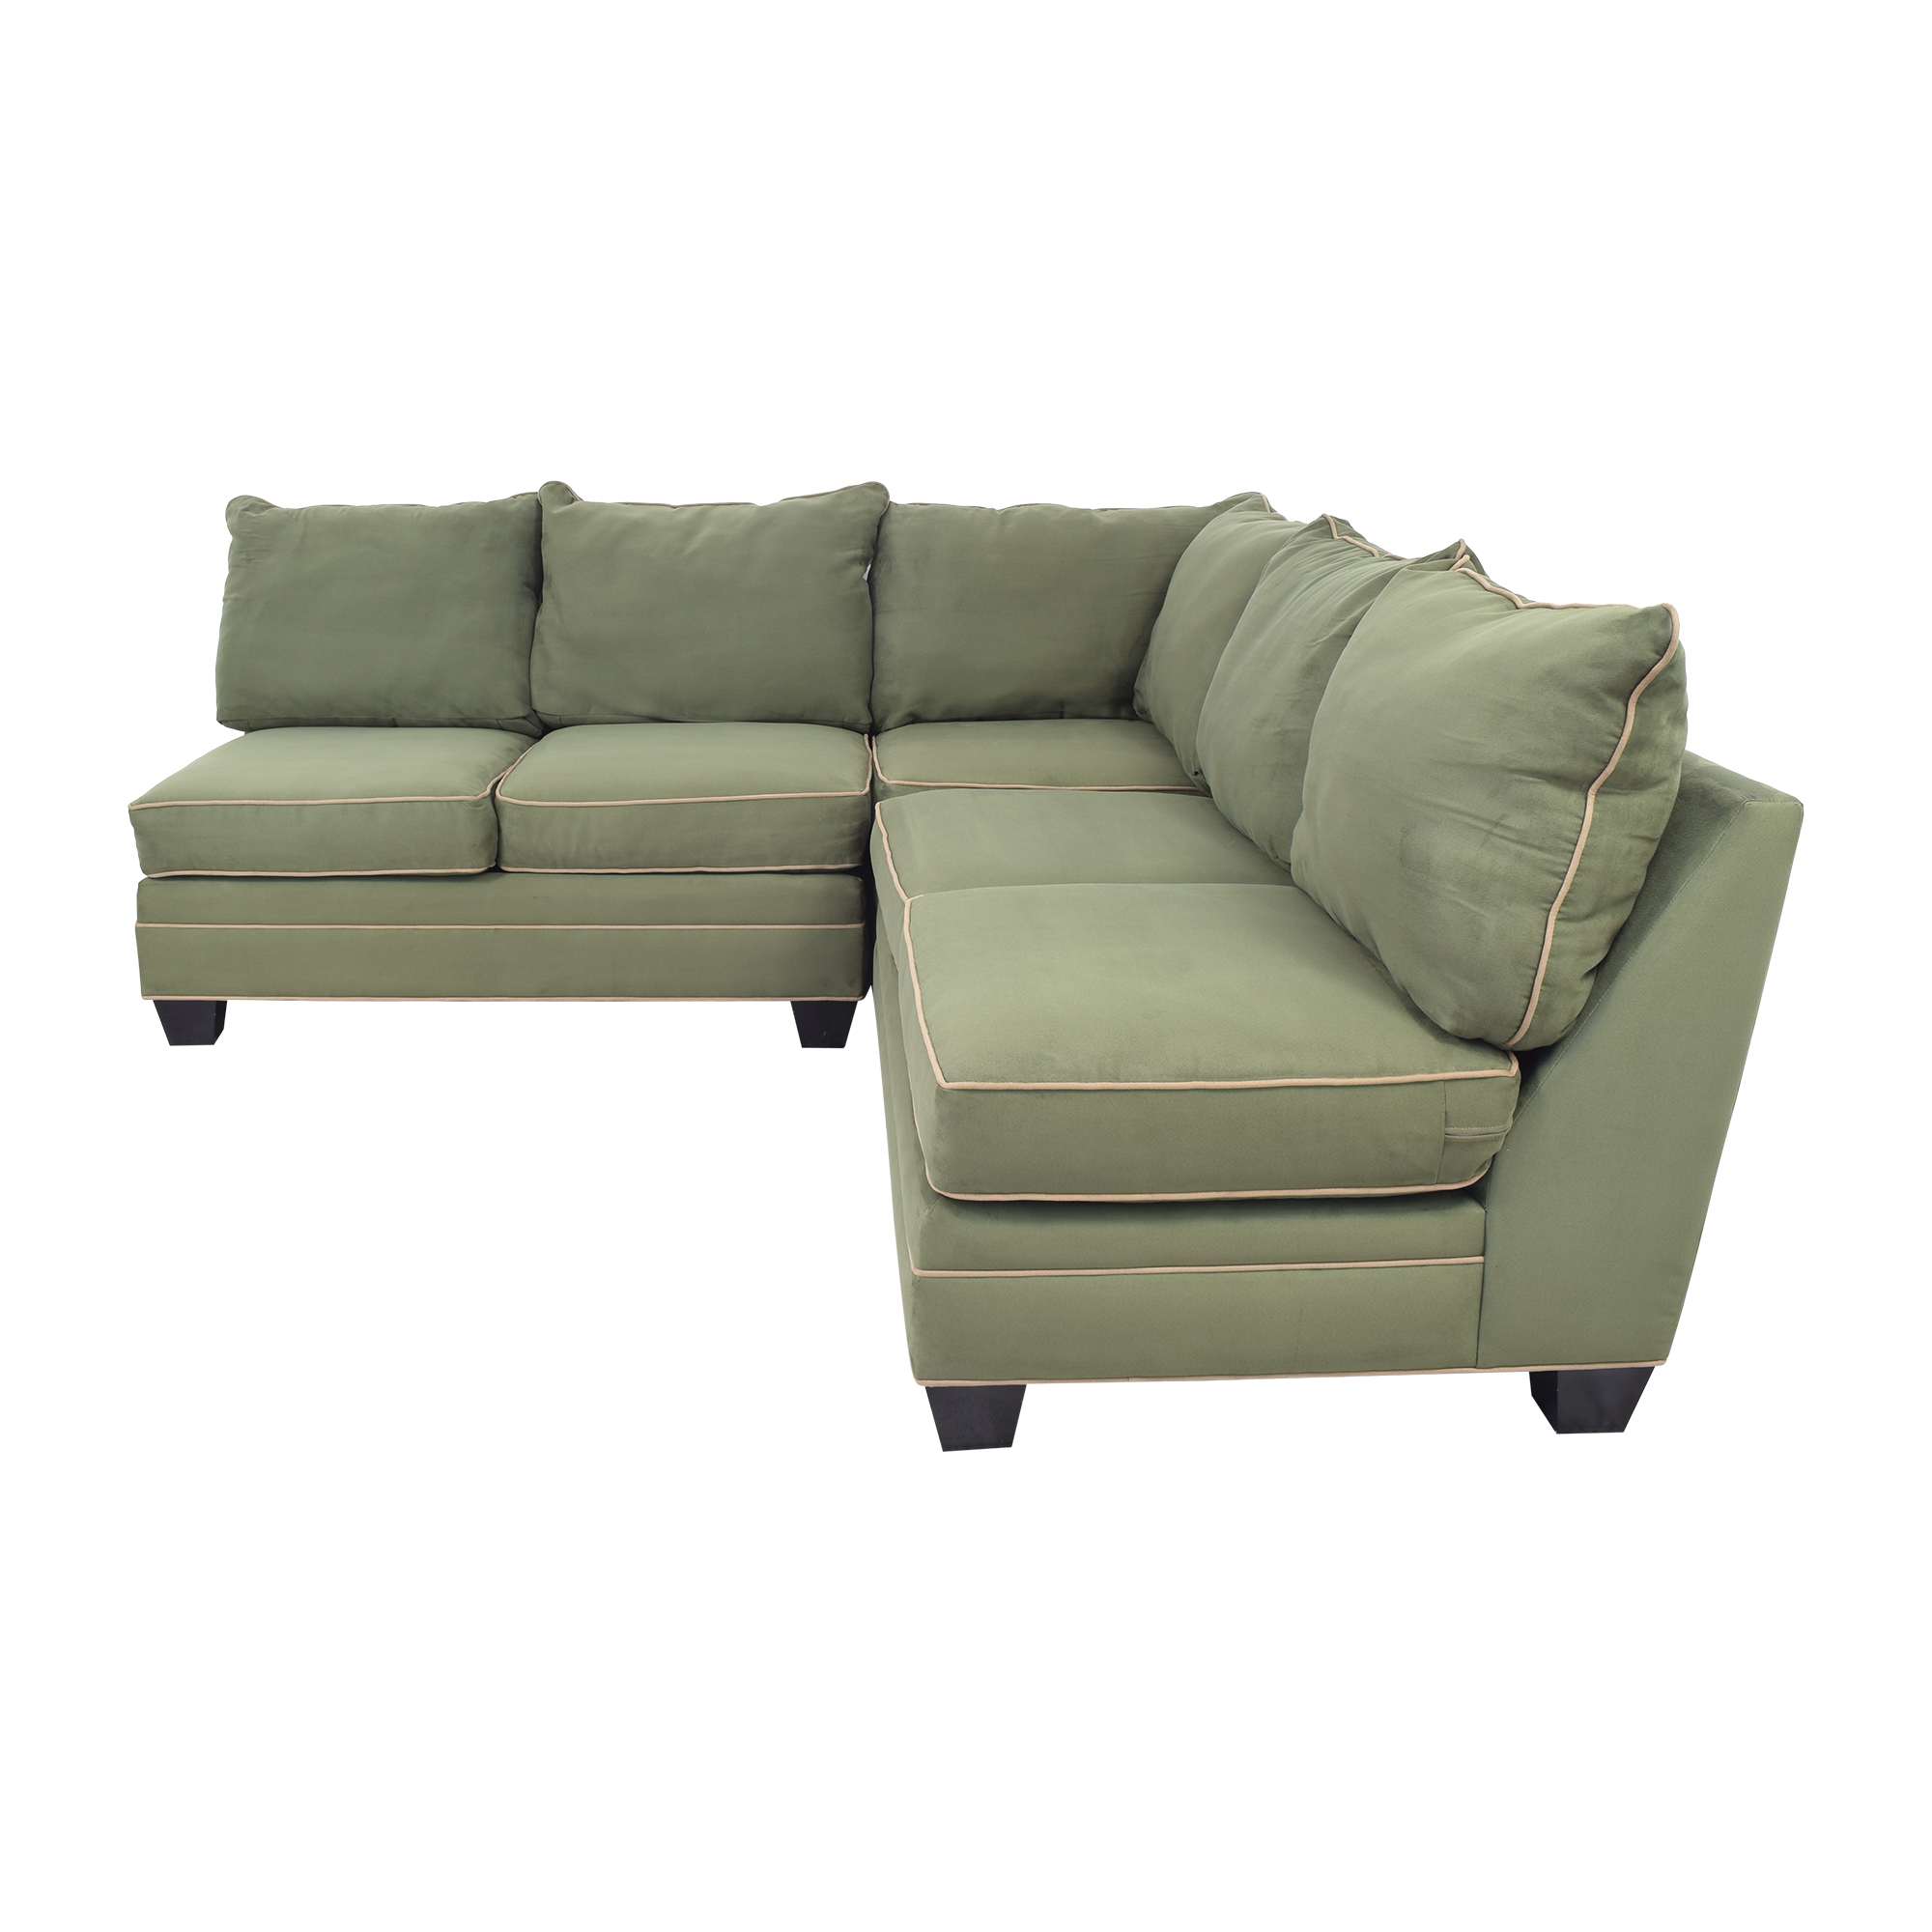 HM Richards Furniture HM Richards Furniture Sectional Sofa